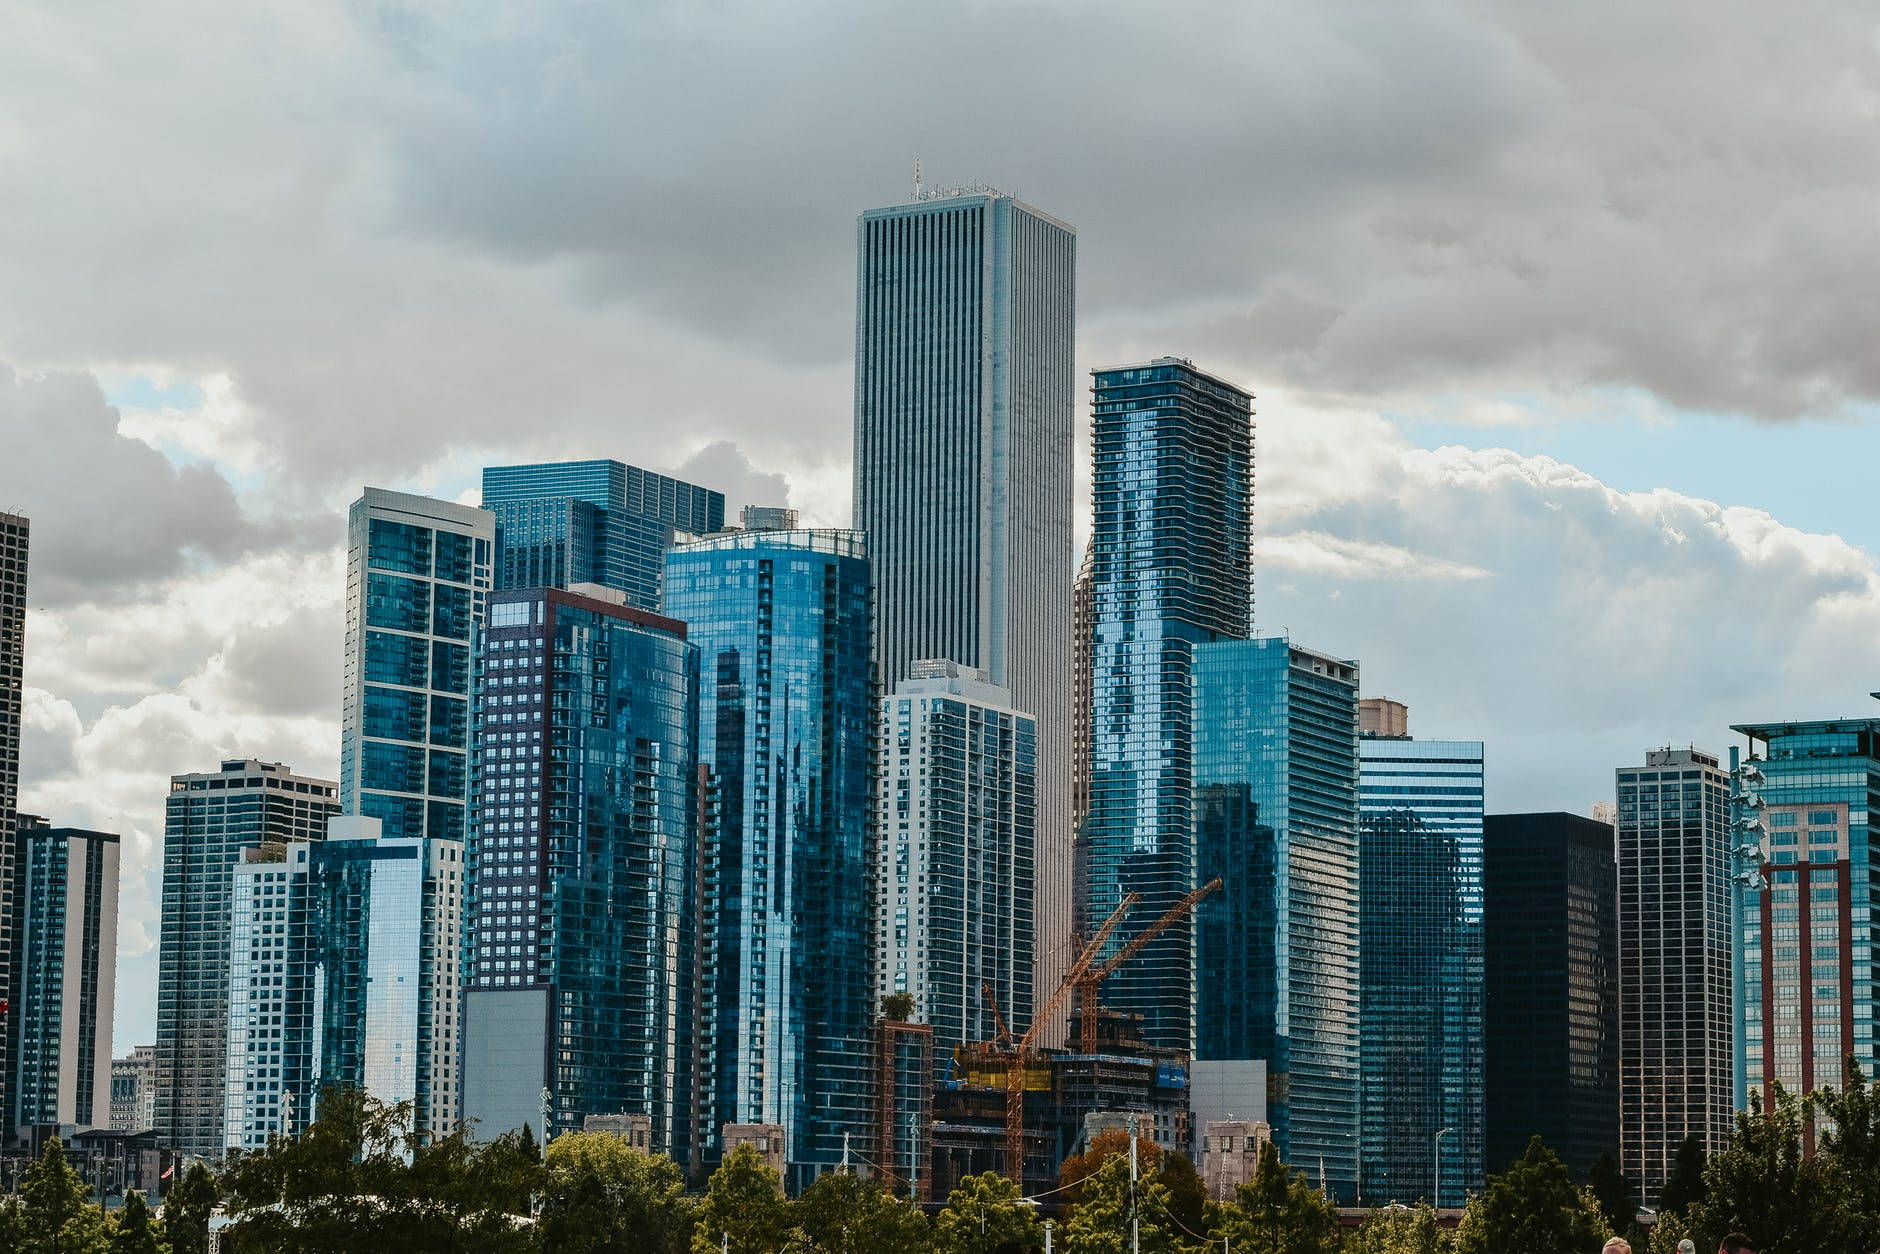 modern district with skyscrapers in cloudy day